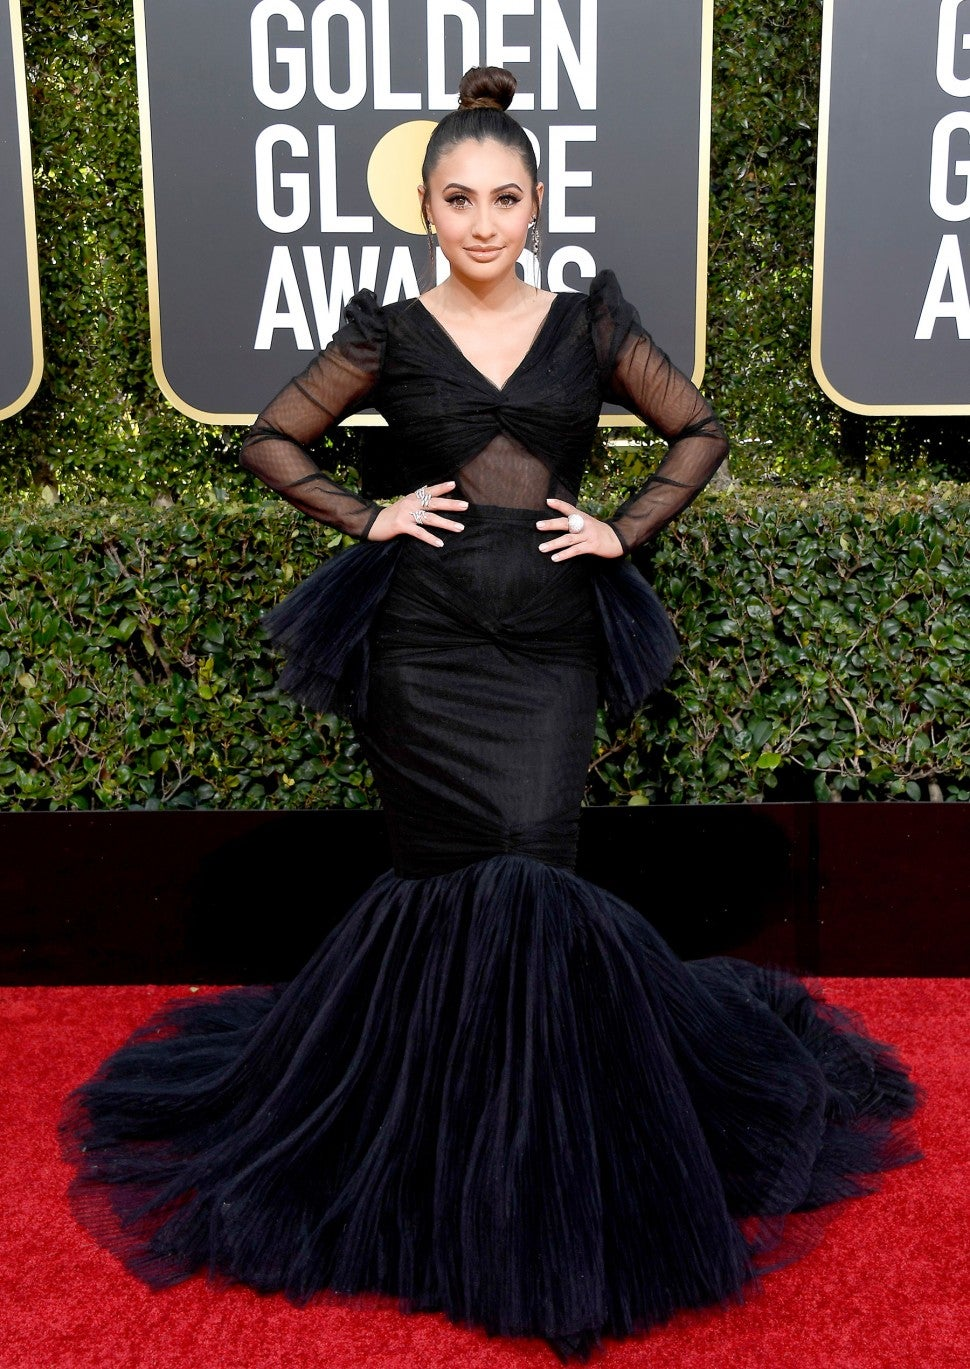 Francia Raisa at the 76th Annual Golden Globe Awards